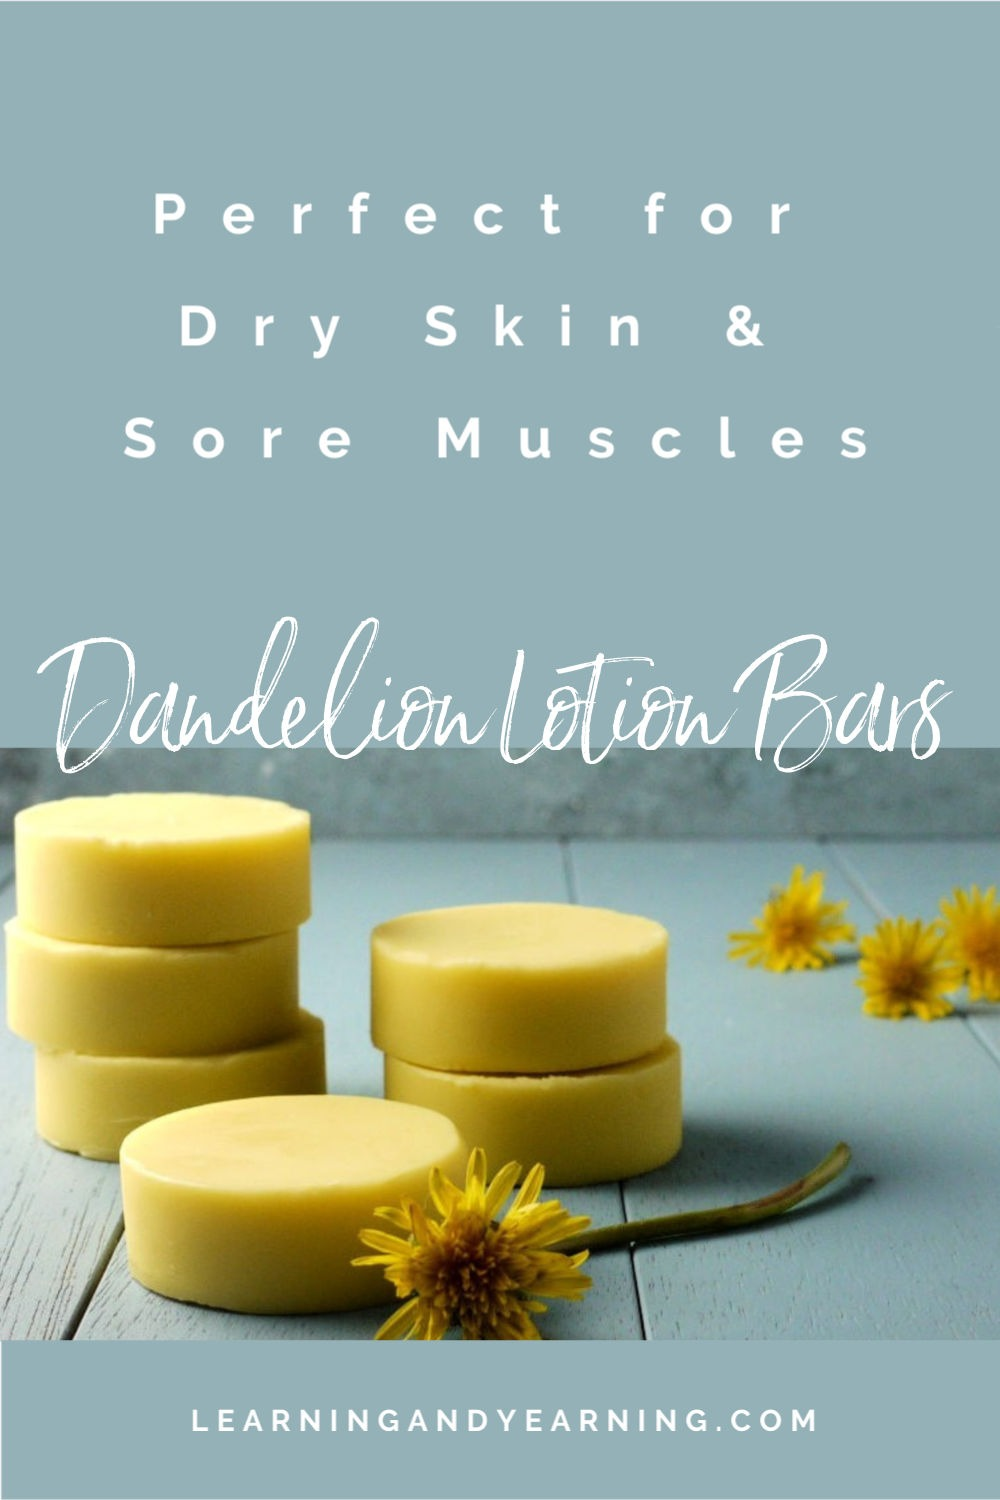 Dandelion Oil Lotion Bars